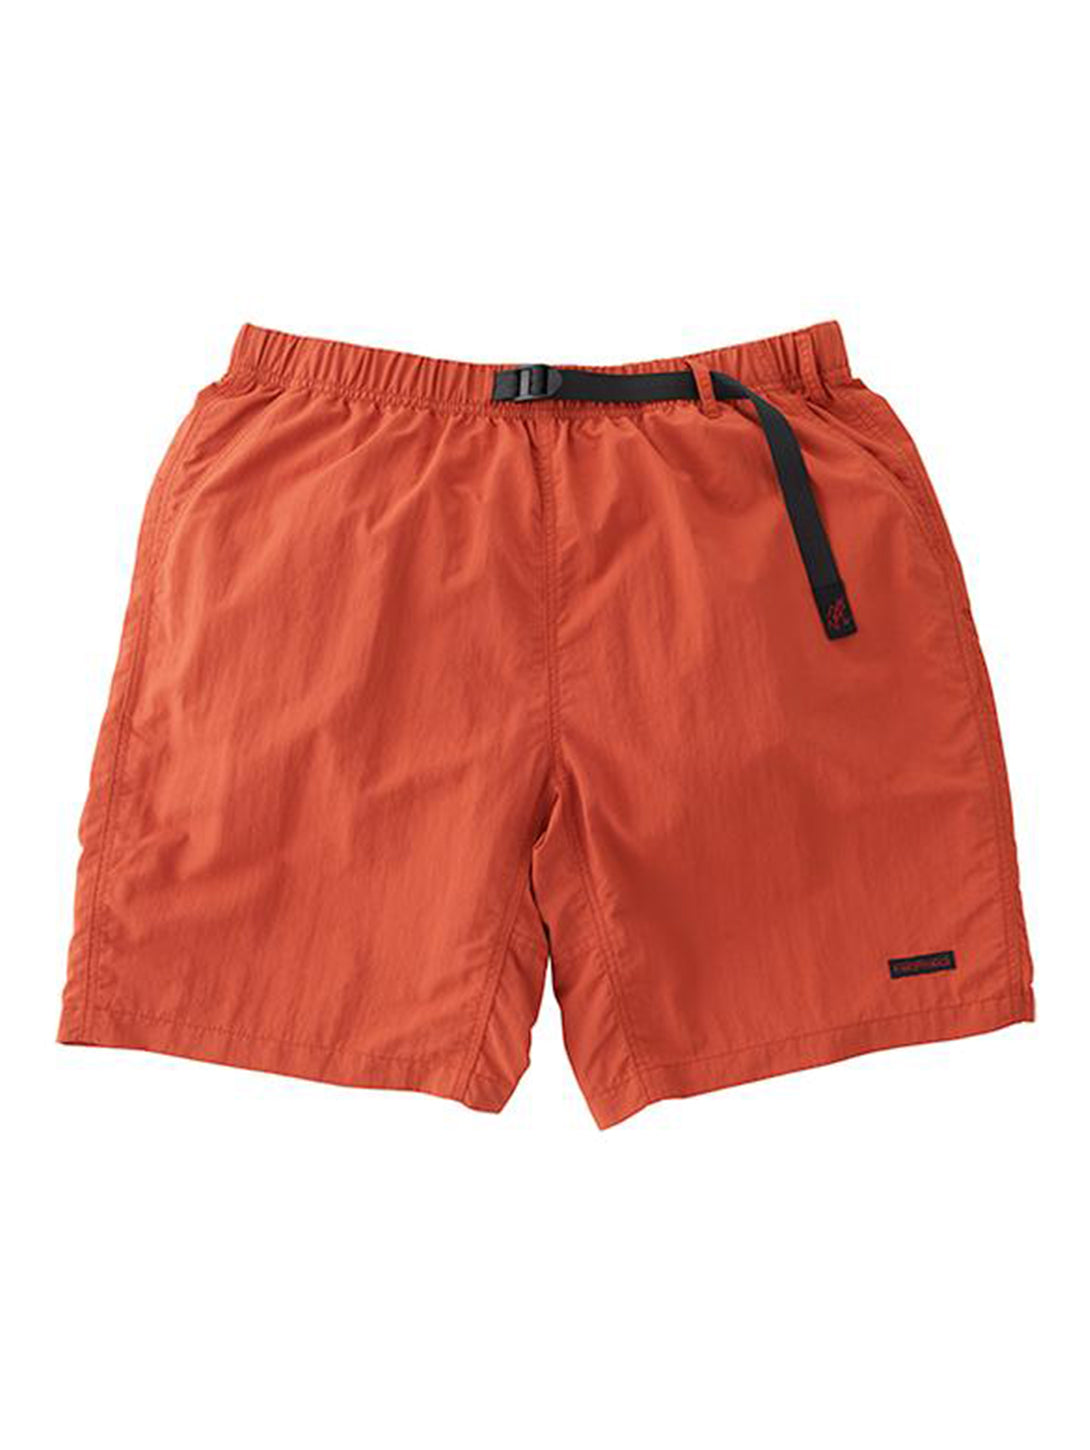 Shell Packable Short - Terracotta-GRAMICCI-Over the Rainbow